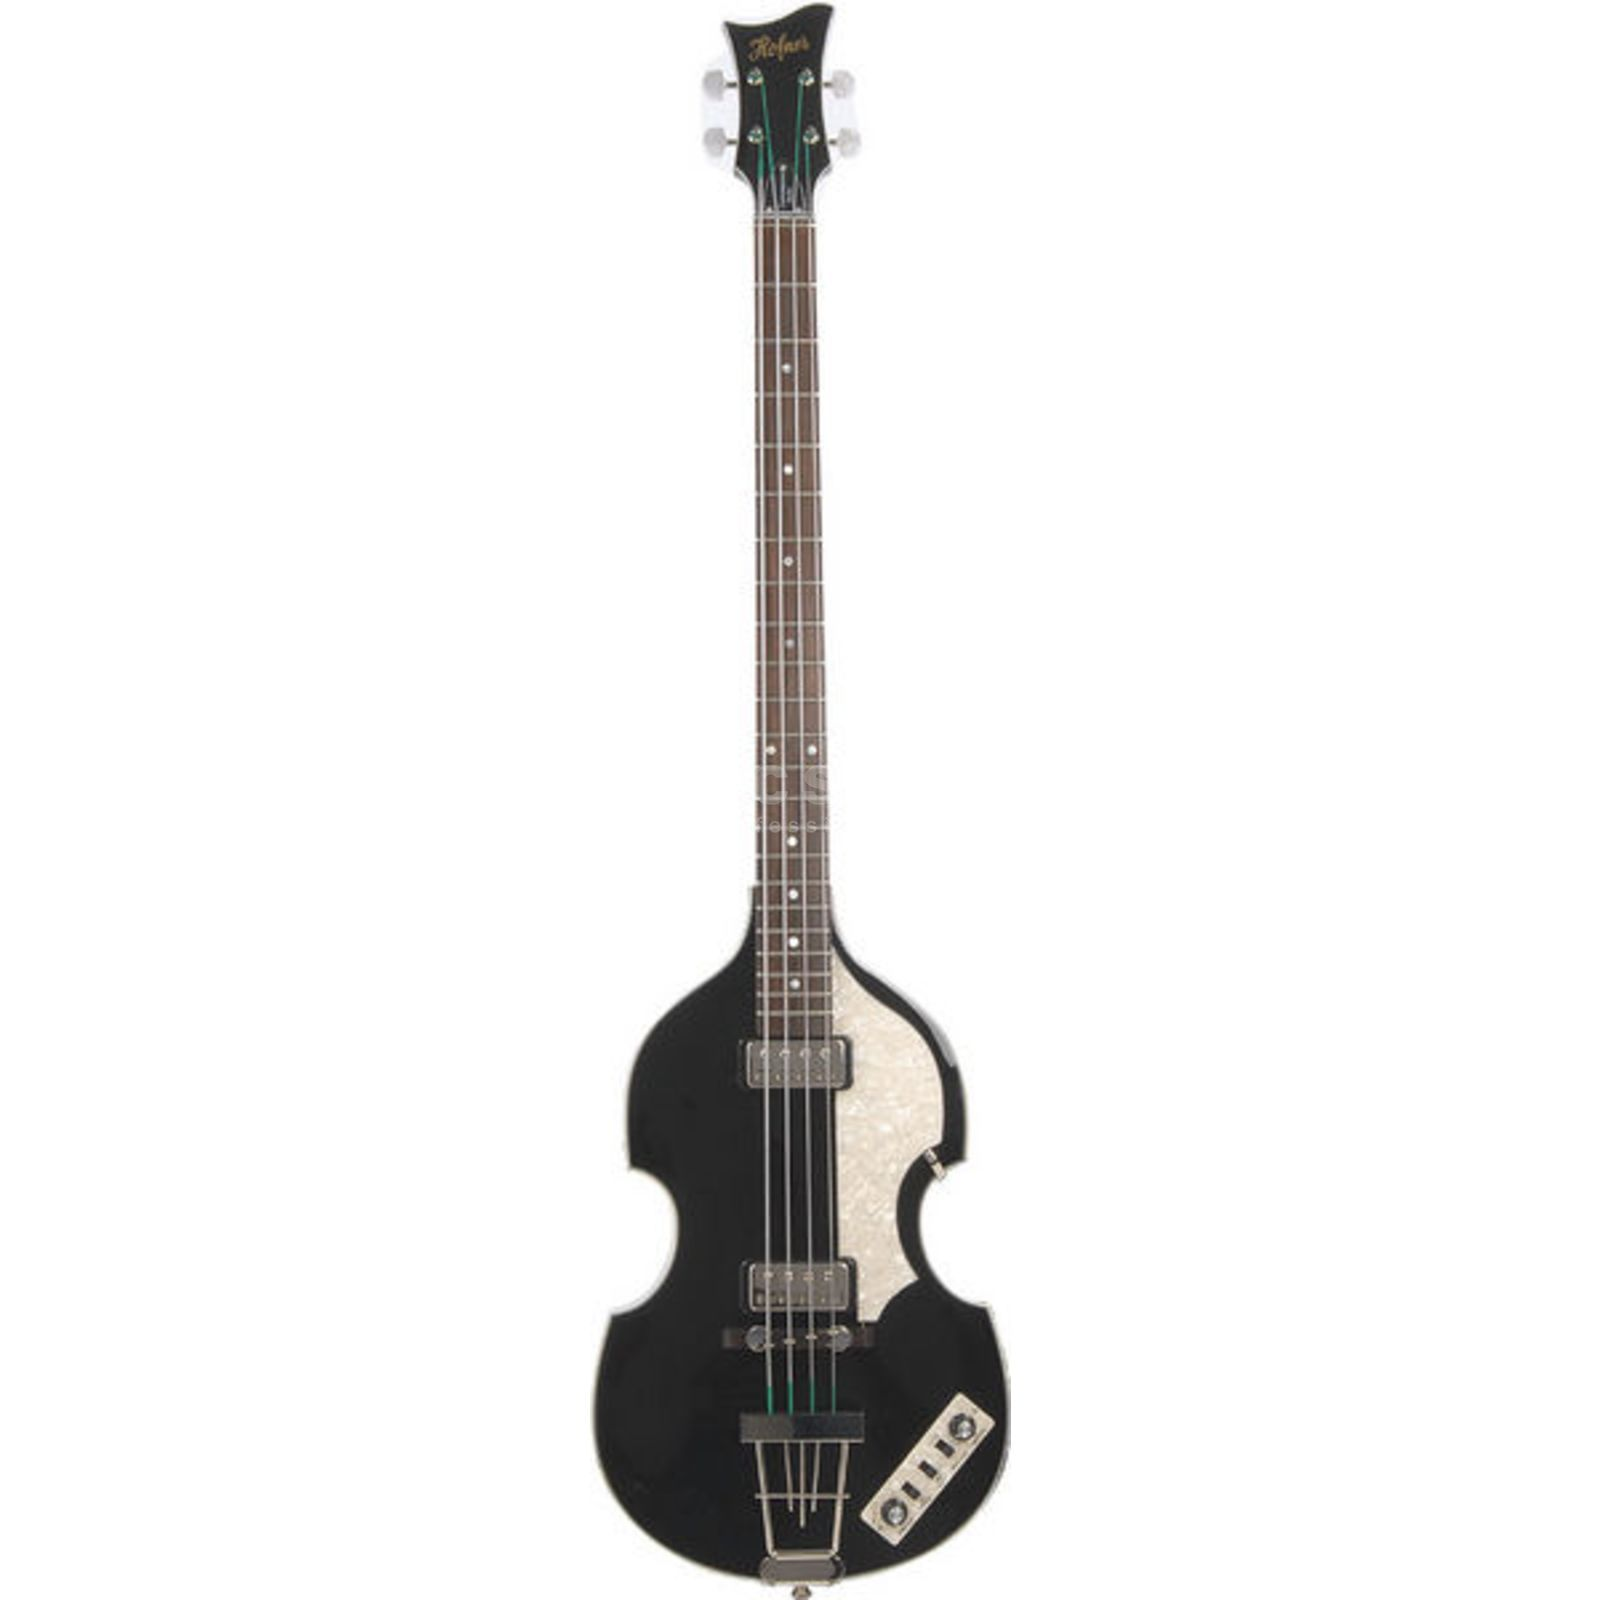 Höfner Contemporary Violin Bass Black HCT-500/1-BK B-Stock Product Image